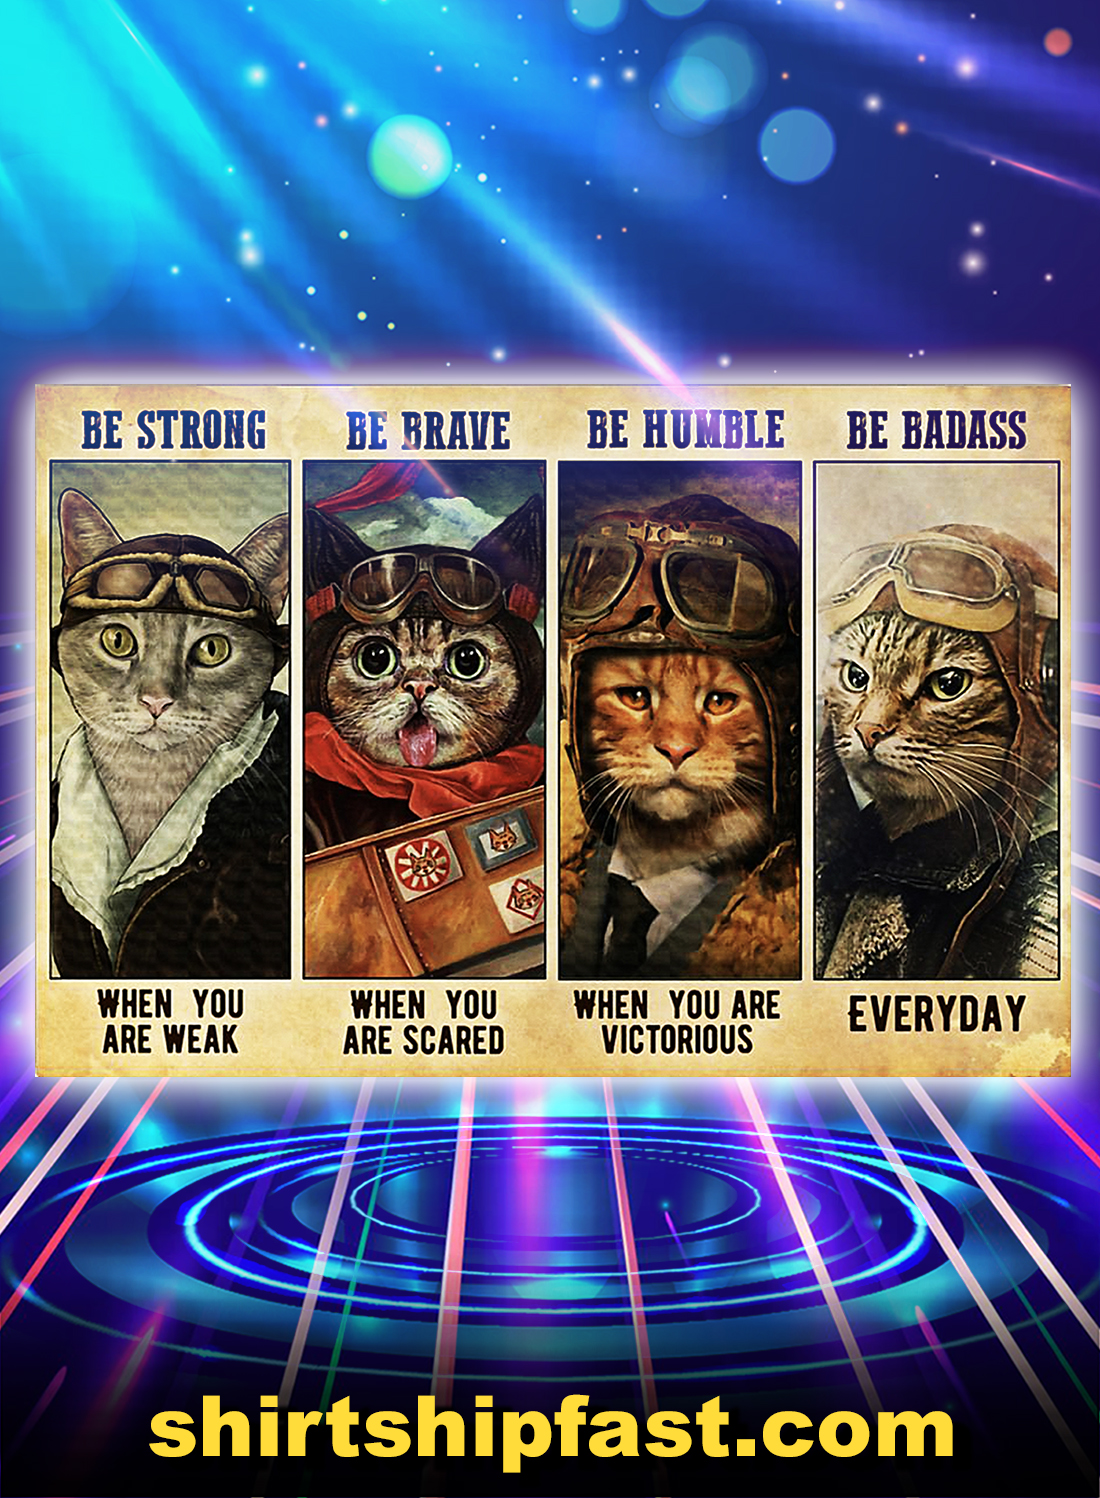 Be strong be brave be humble be badass cat pilot poster